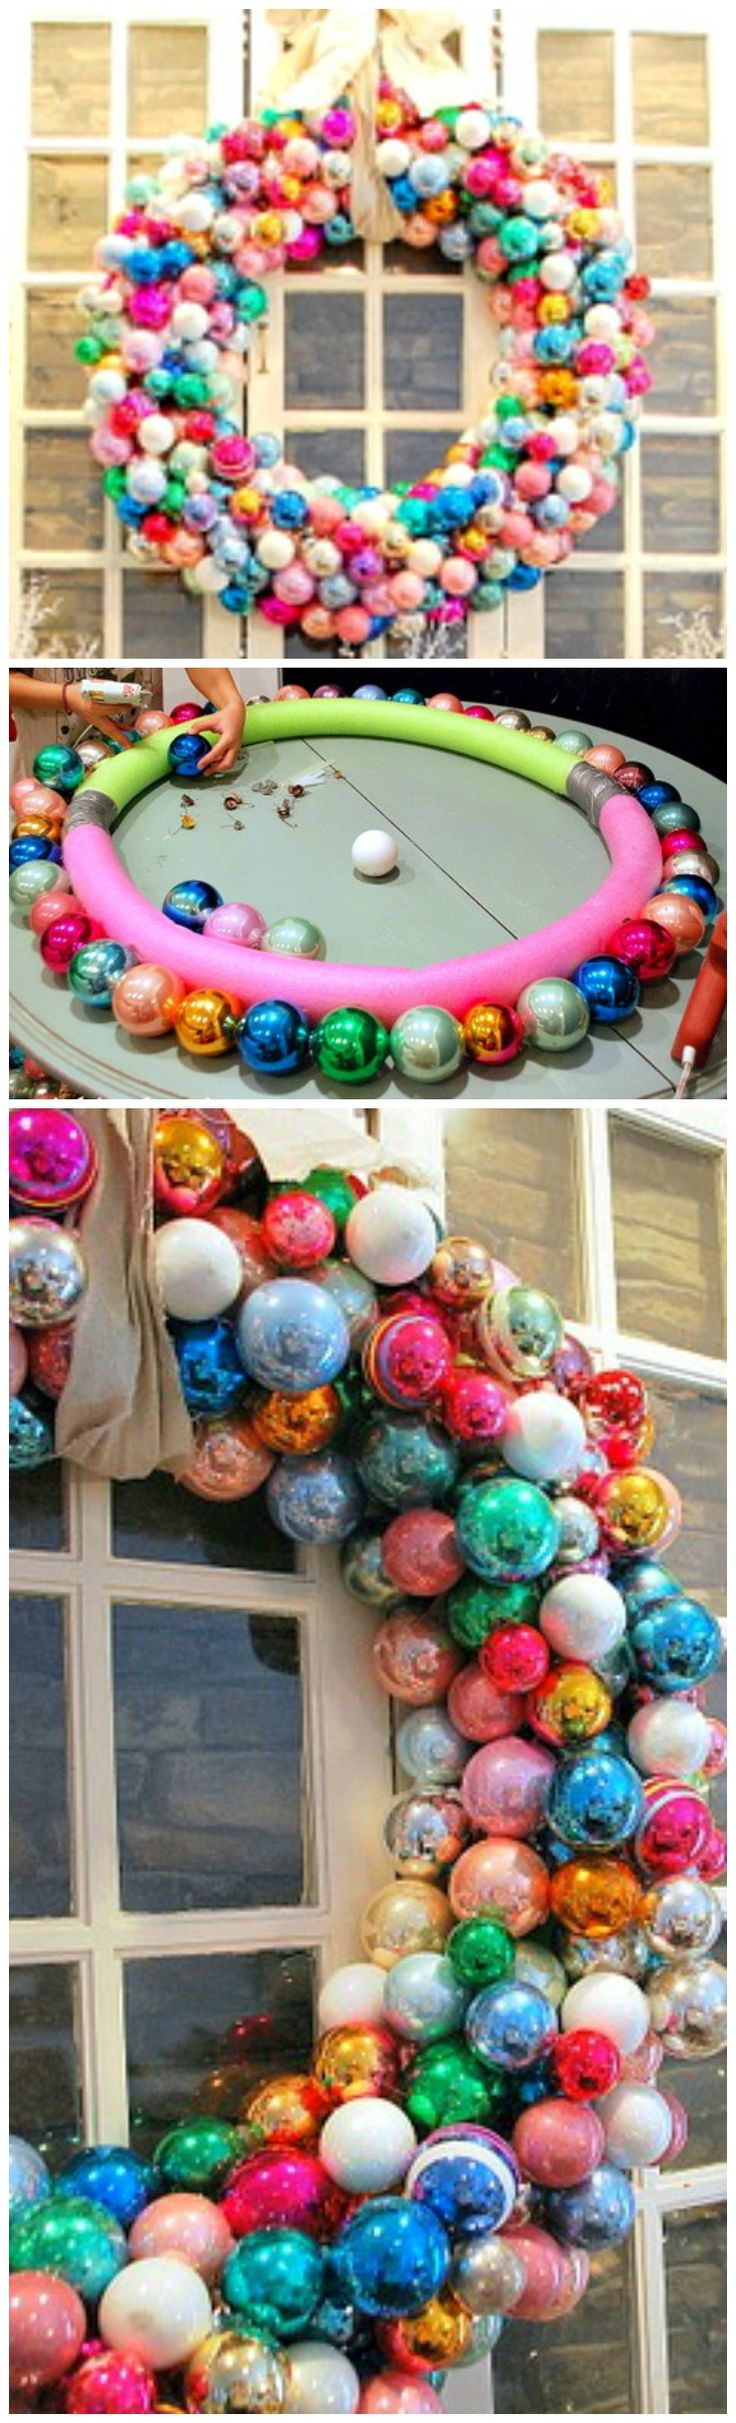 Pool Noodle Ornament Wreath Tutorial